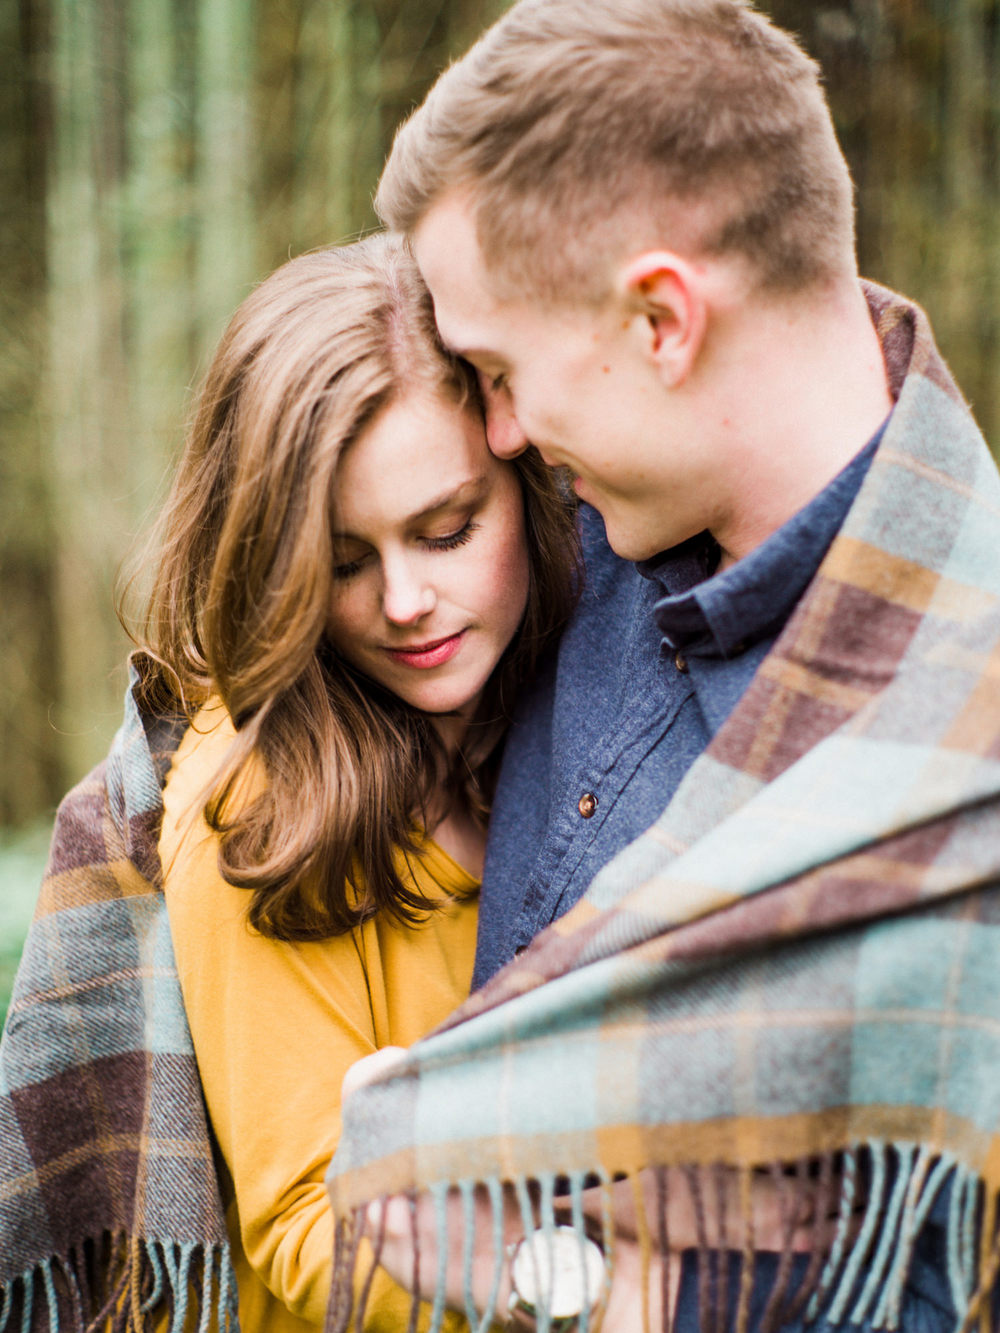 022-snoqualmie-mountain-engagement-session-seattle-film-wedding-photographer-ryan-flynn.jpg